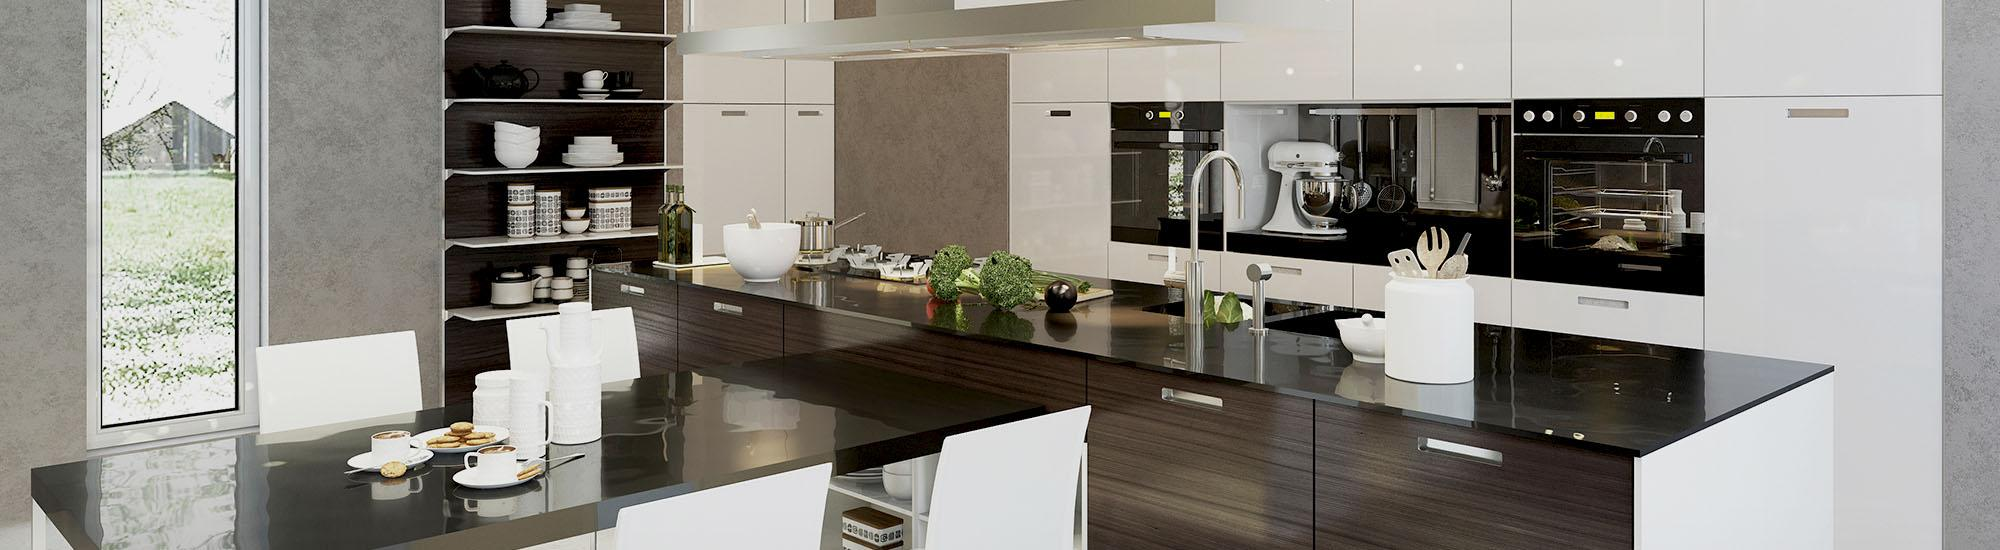 Kitchens Toronto Toronto Kitchens Woodpecker Kitchen Designs Inc